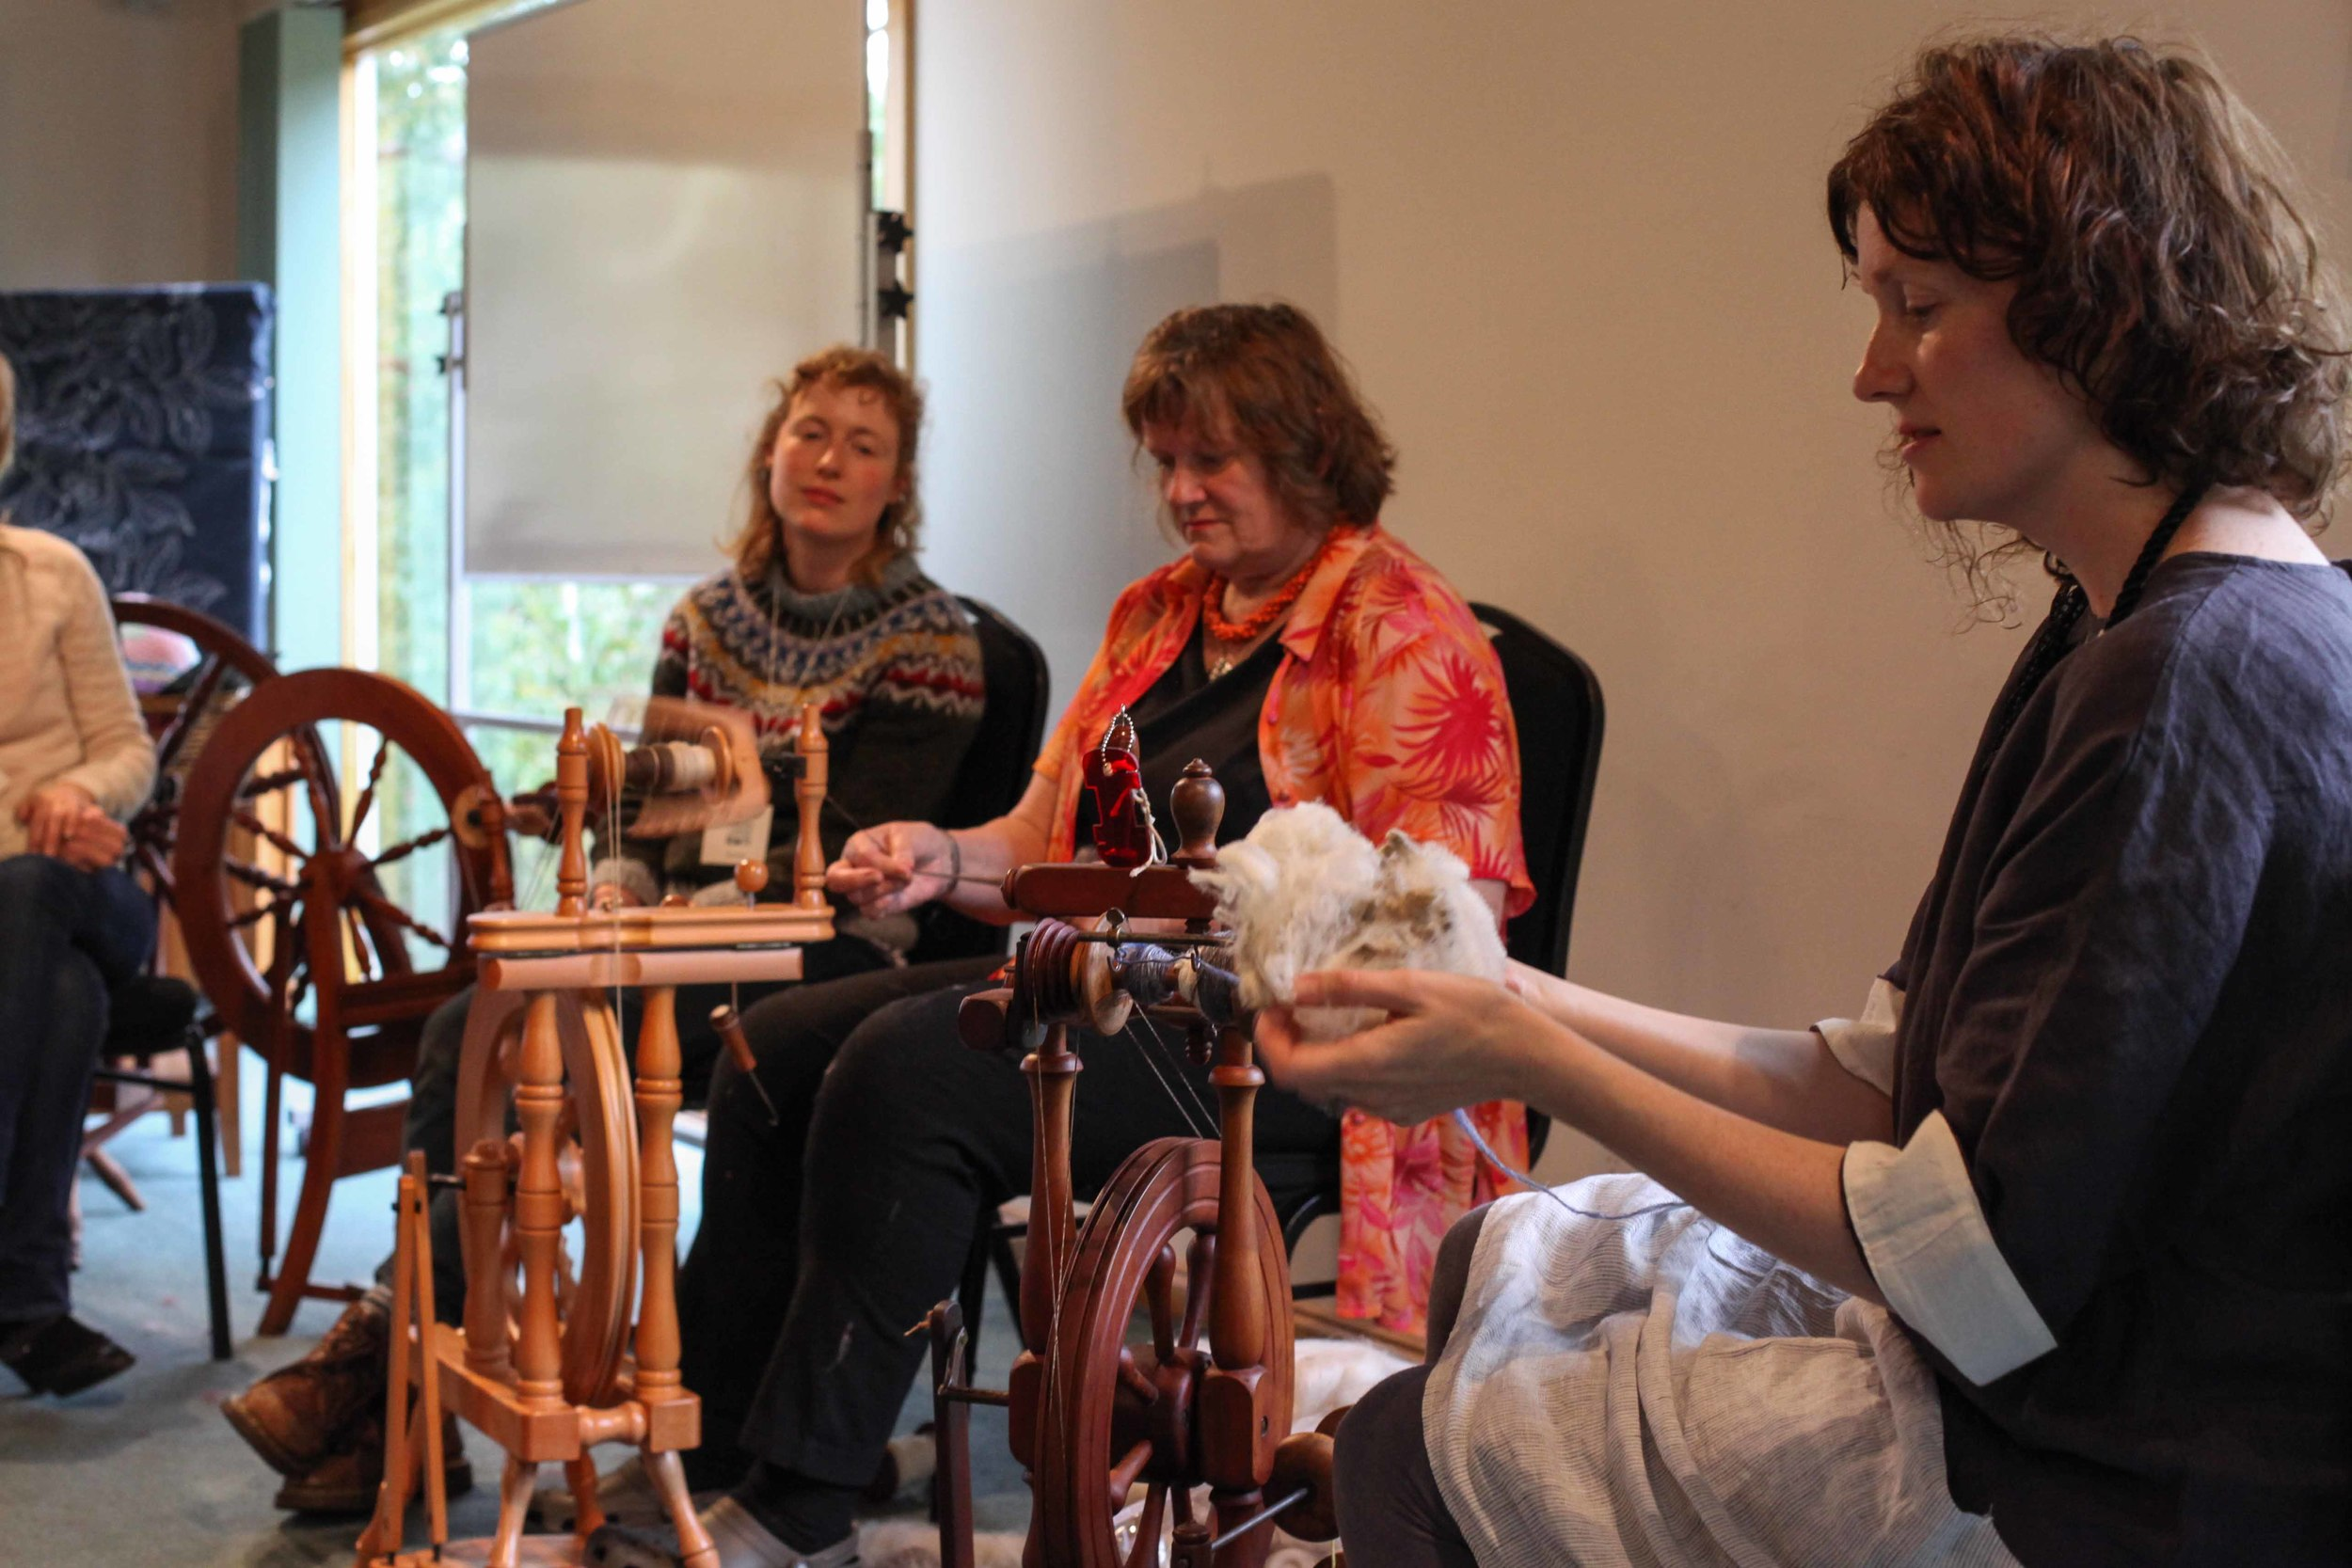 Spinning demonstration with Kate and her mum Judy.